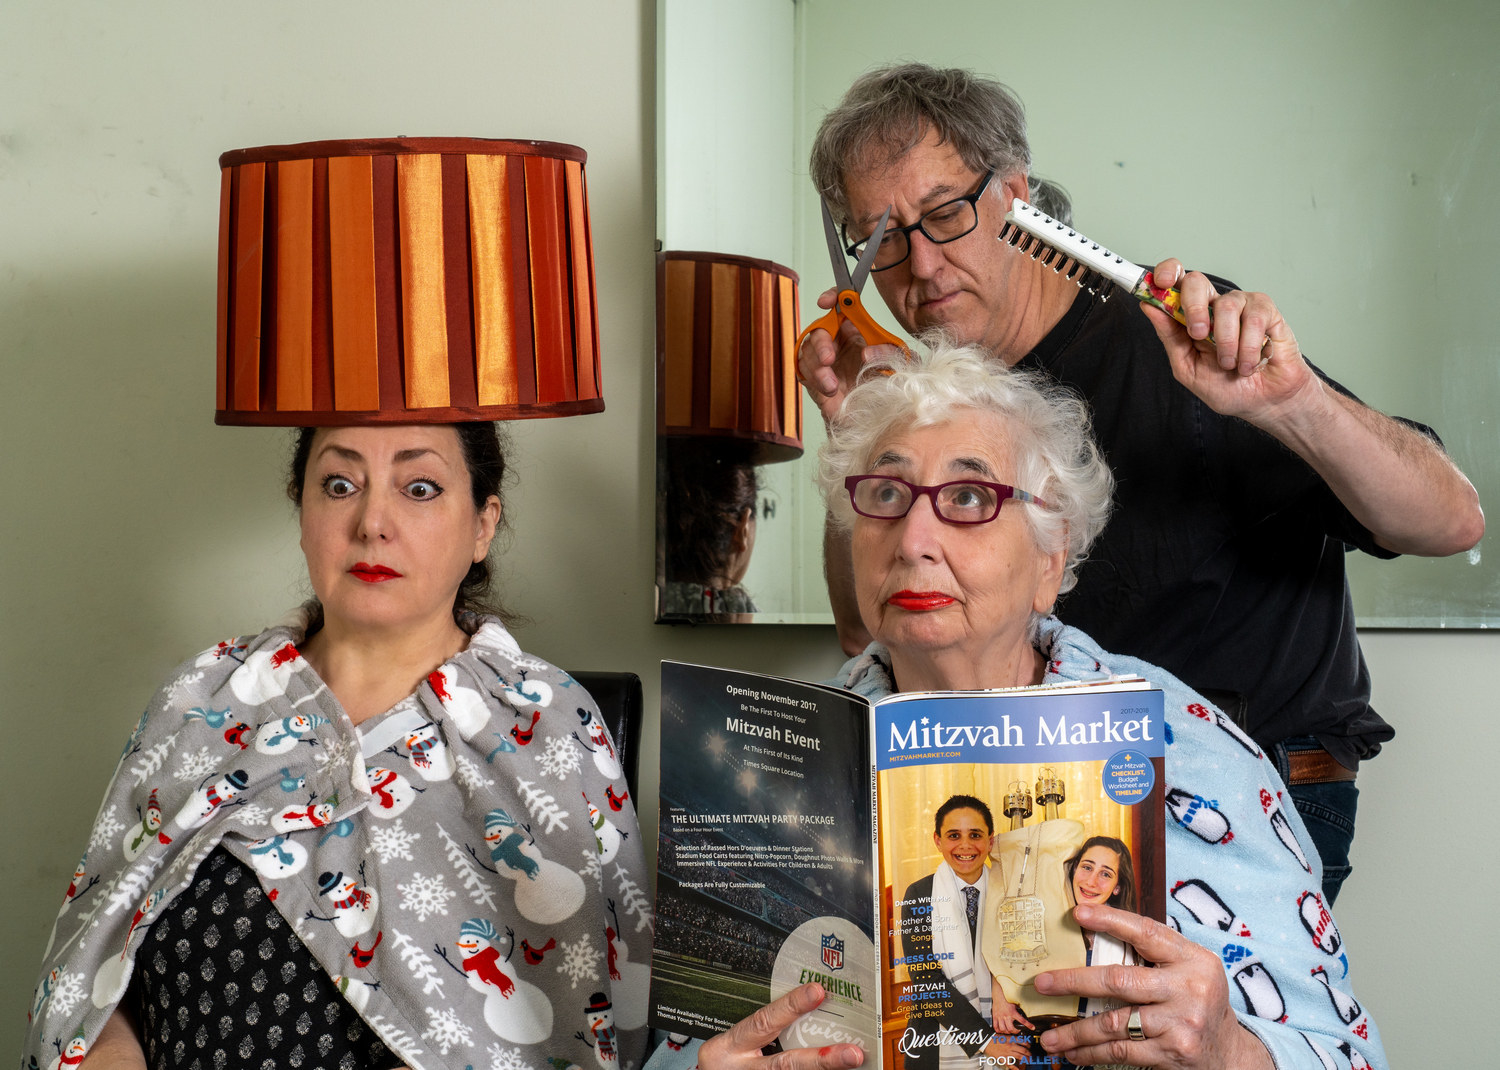 A man play-acting at giving two women a haircut, one with a magazine one with a lampshade